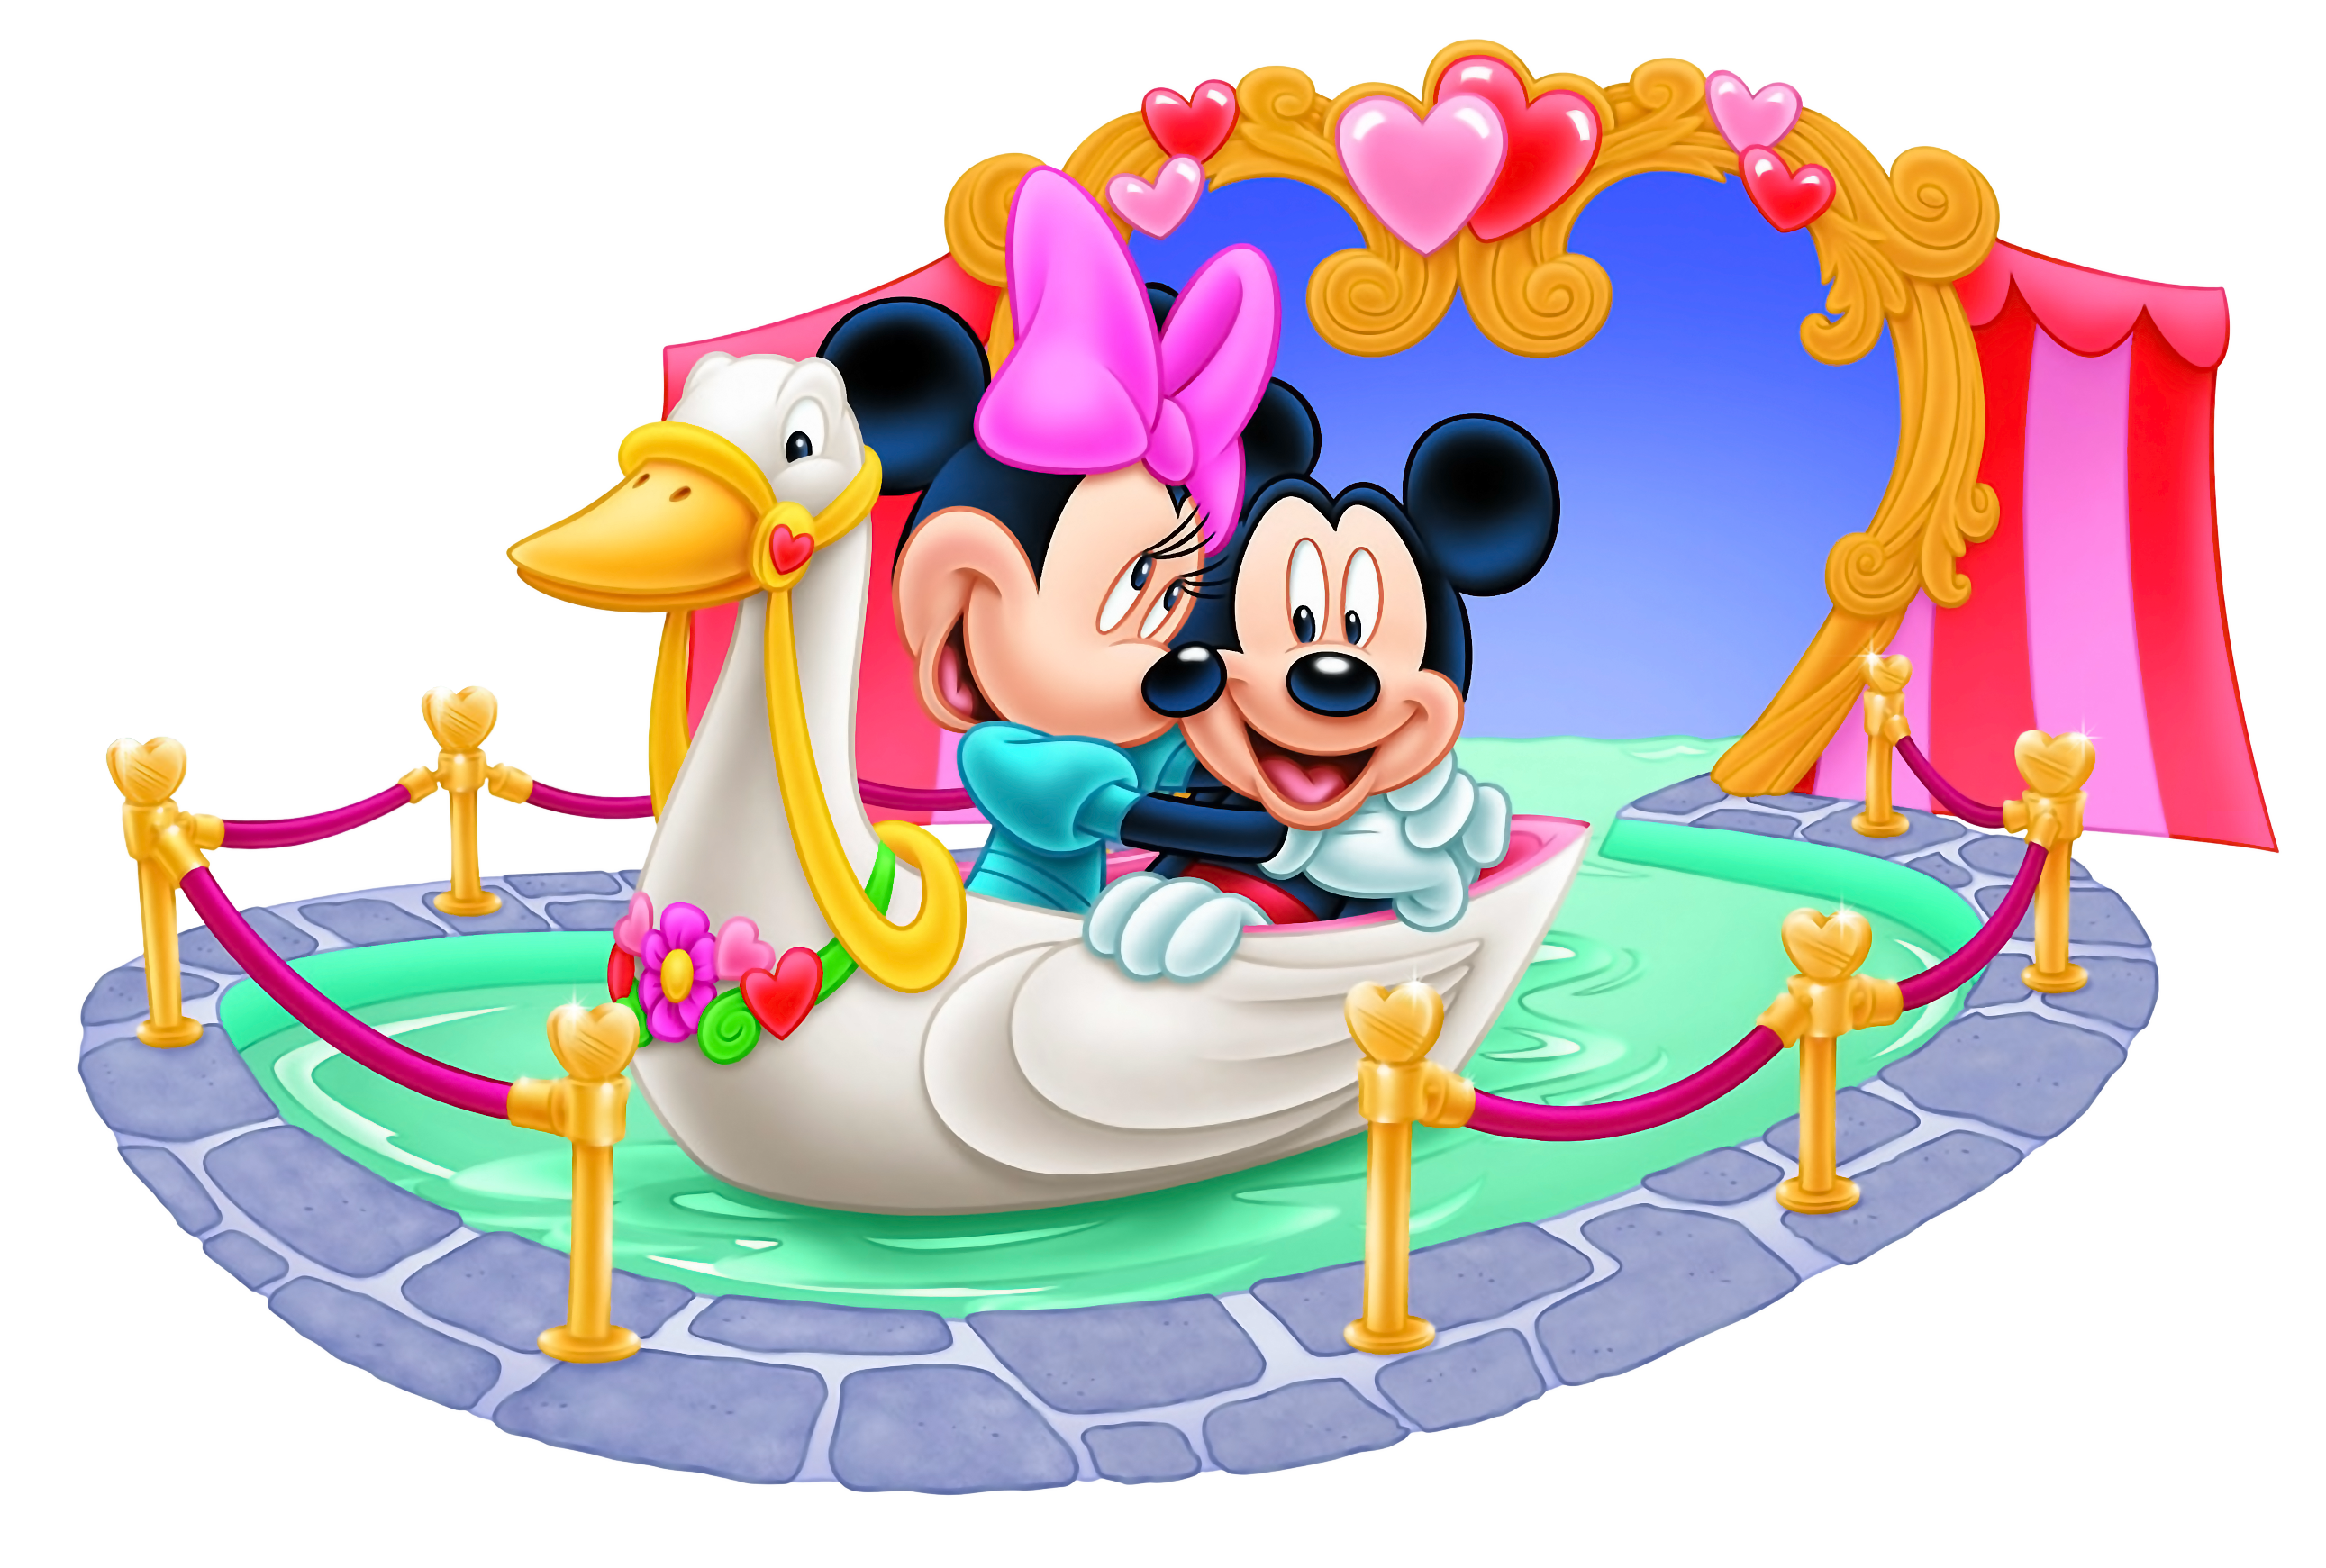 2582x1741 Mickey And Minnie Mouse Tunnel Of Love Png Clipart Image